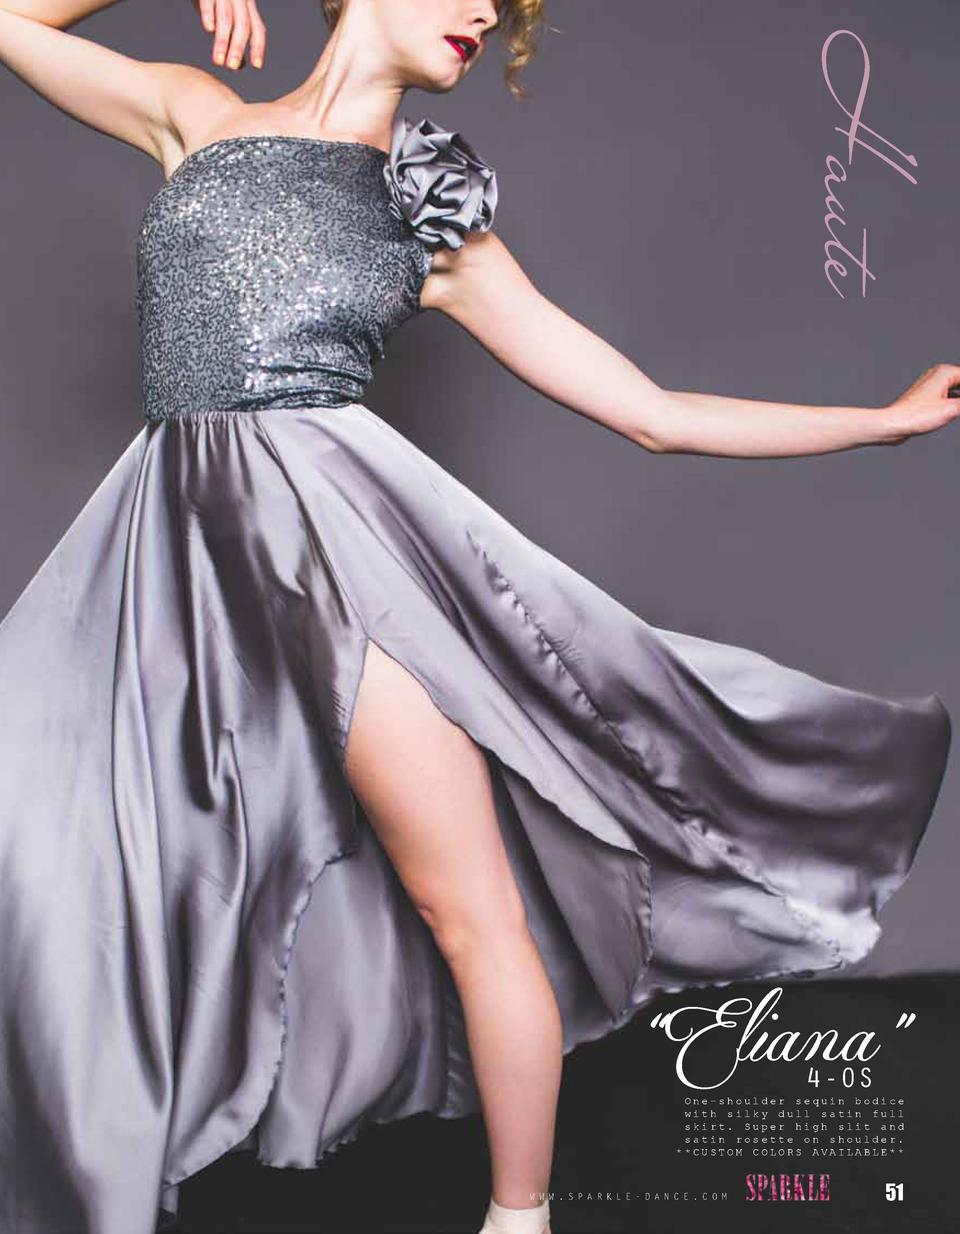 Haute    Eliana    4-OS  One-shoulder sequin bodice with silky dull satin full skirt. Super high slit and satin rosette on...